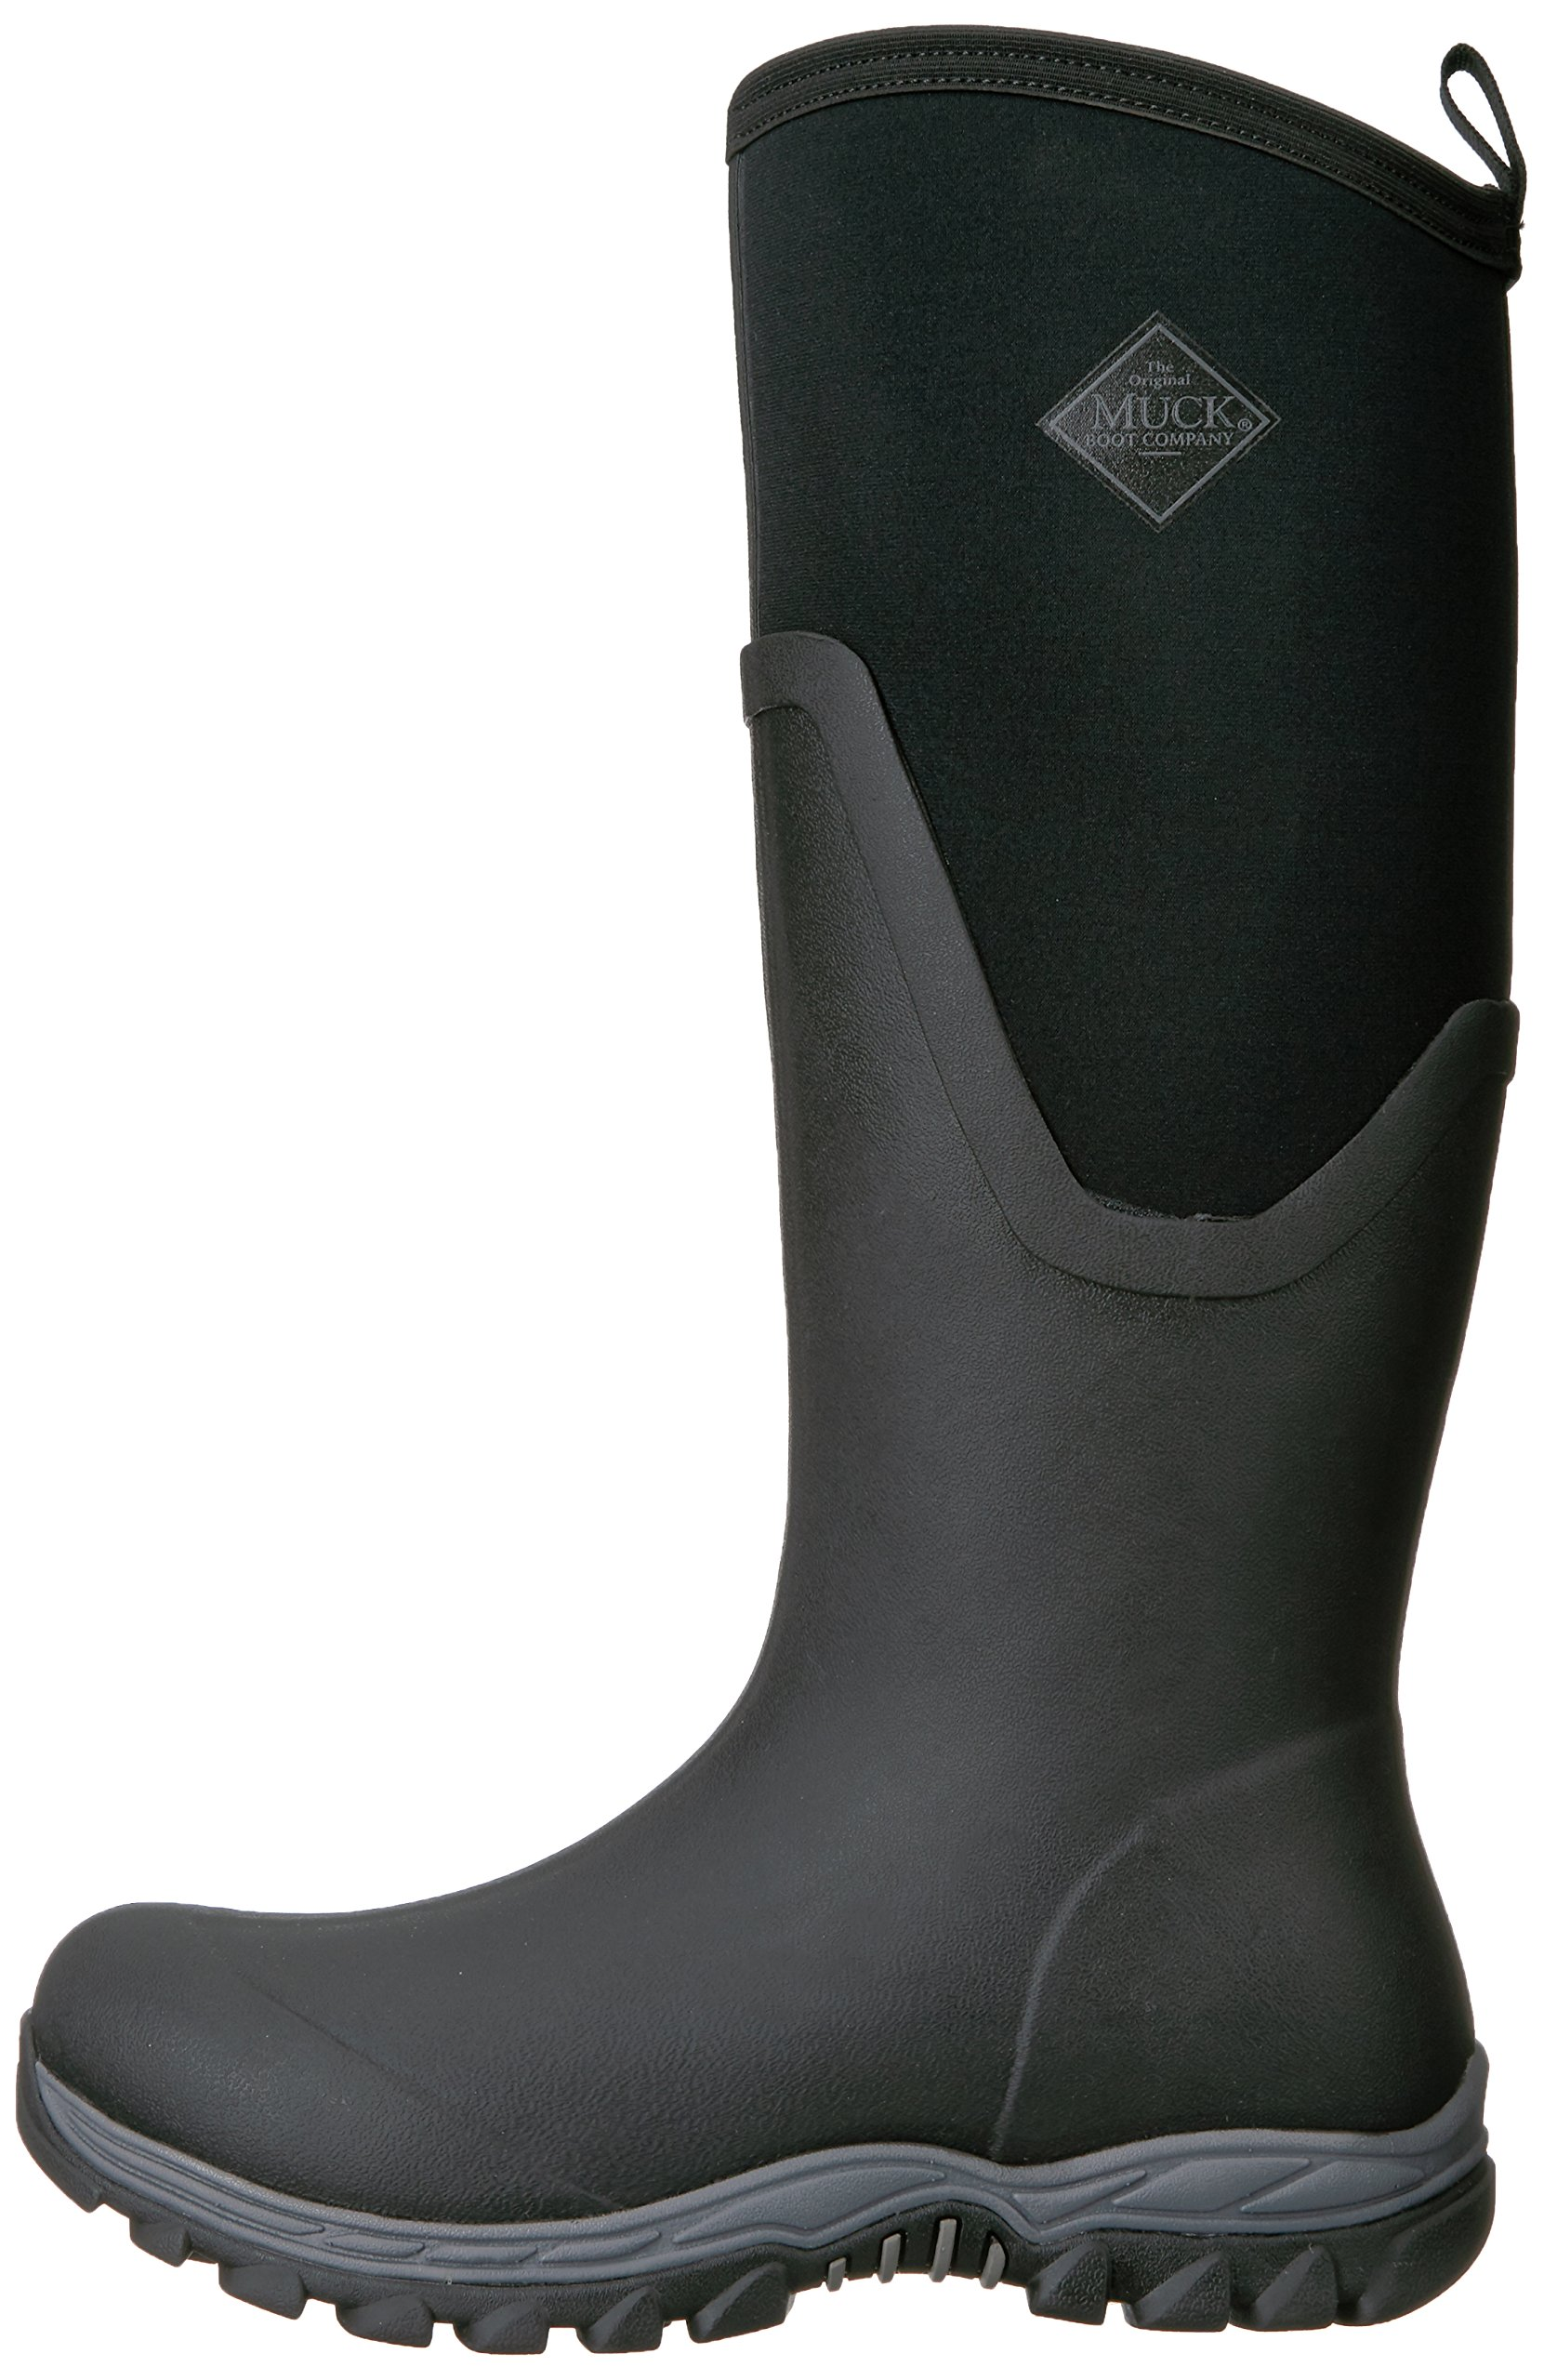 Muck Boot Women's Arctic Sport II Tall Snow Boot, Black, 7 US/7 M US by Muck Boot (Image #5)